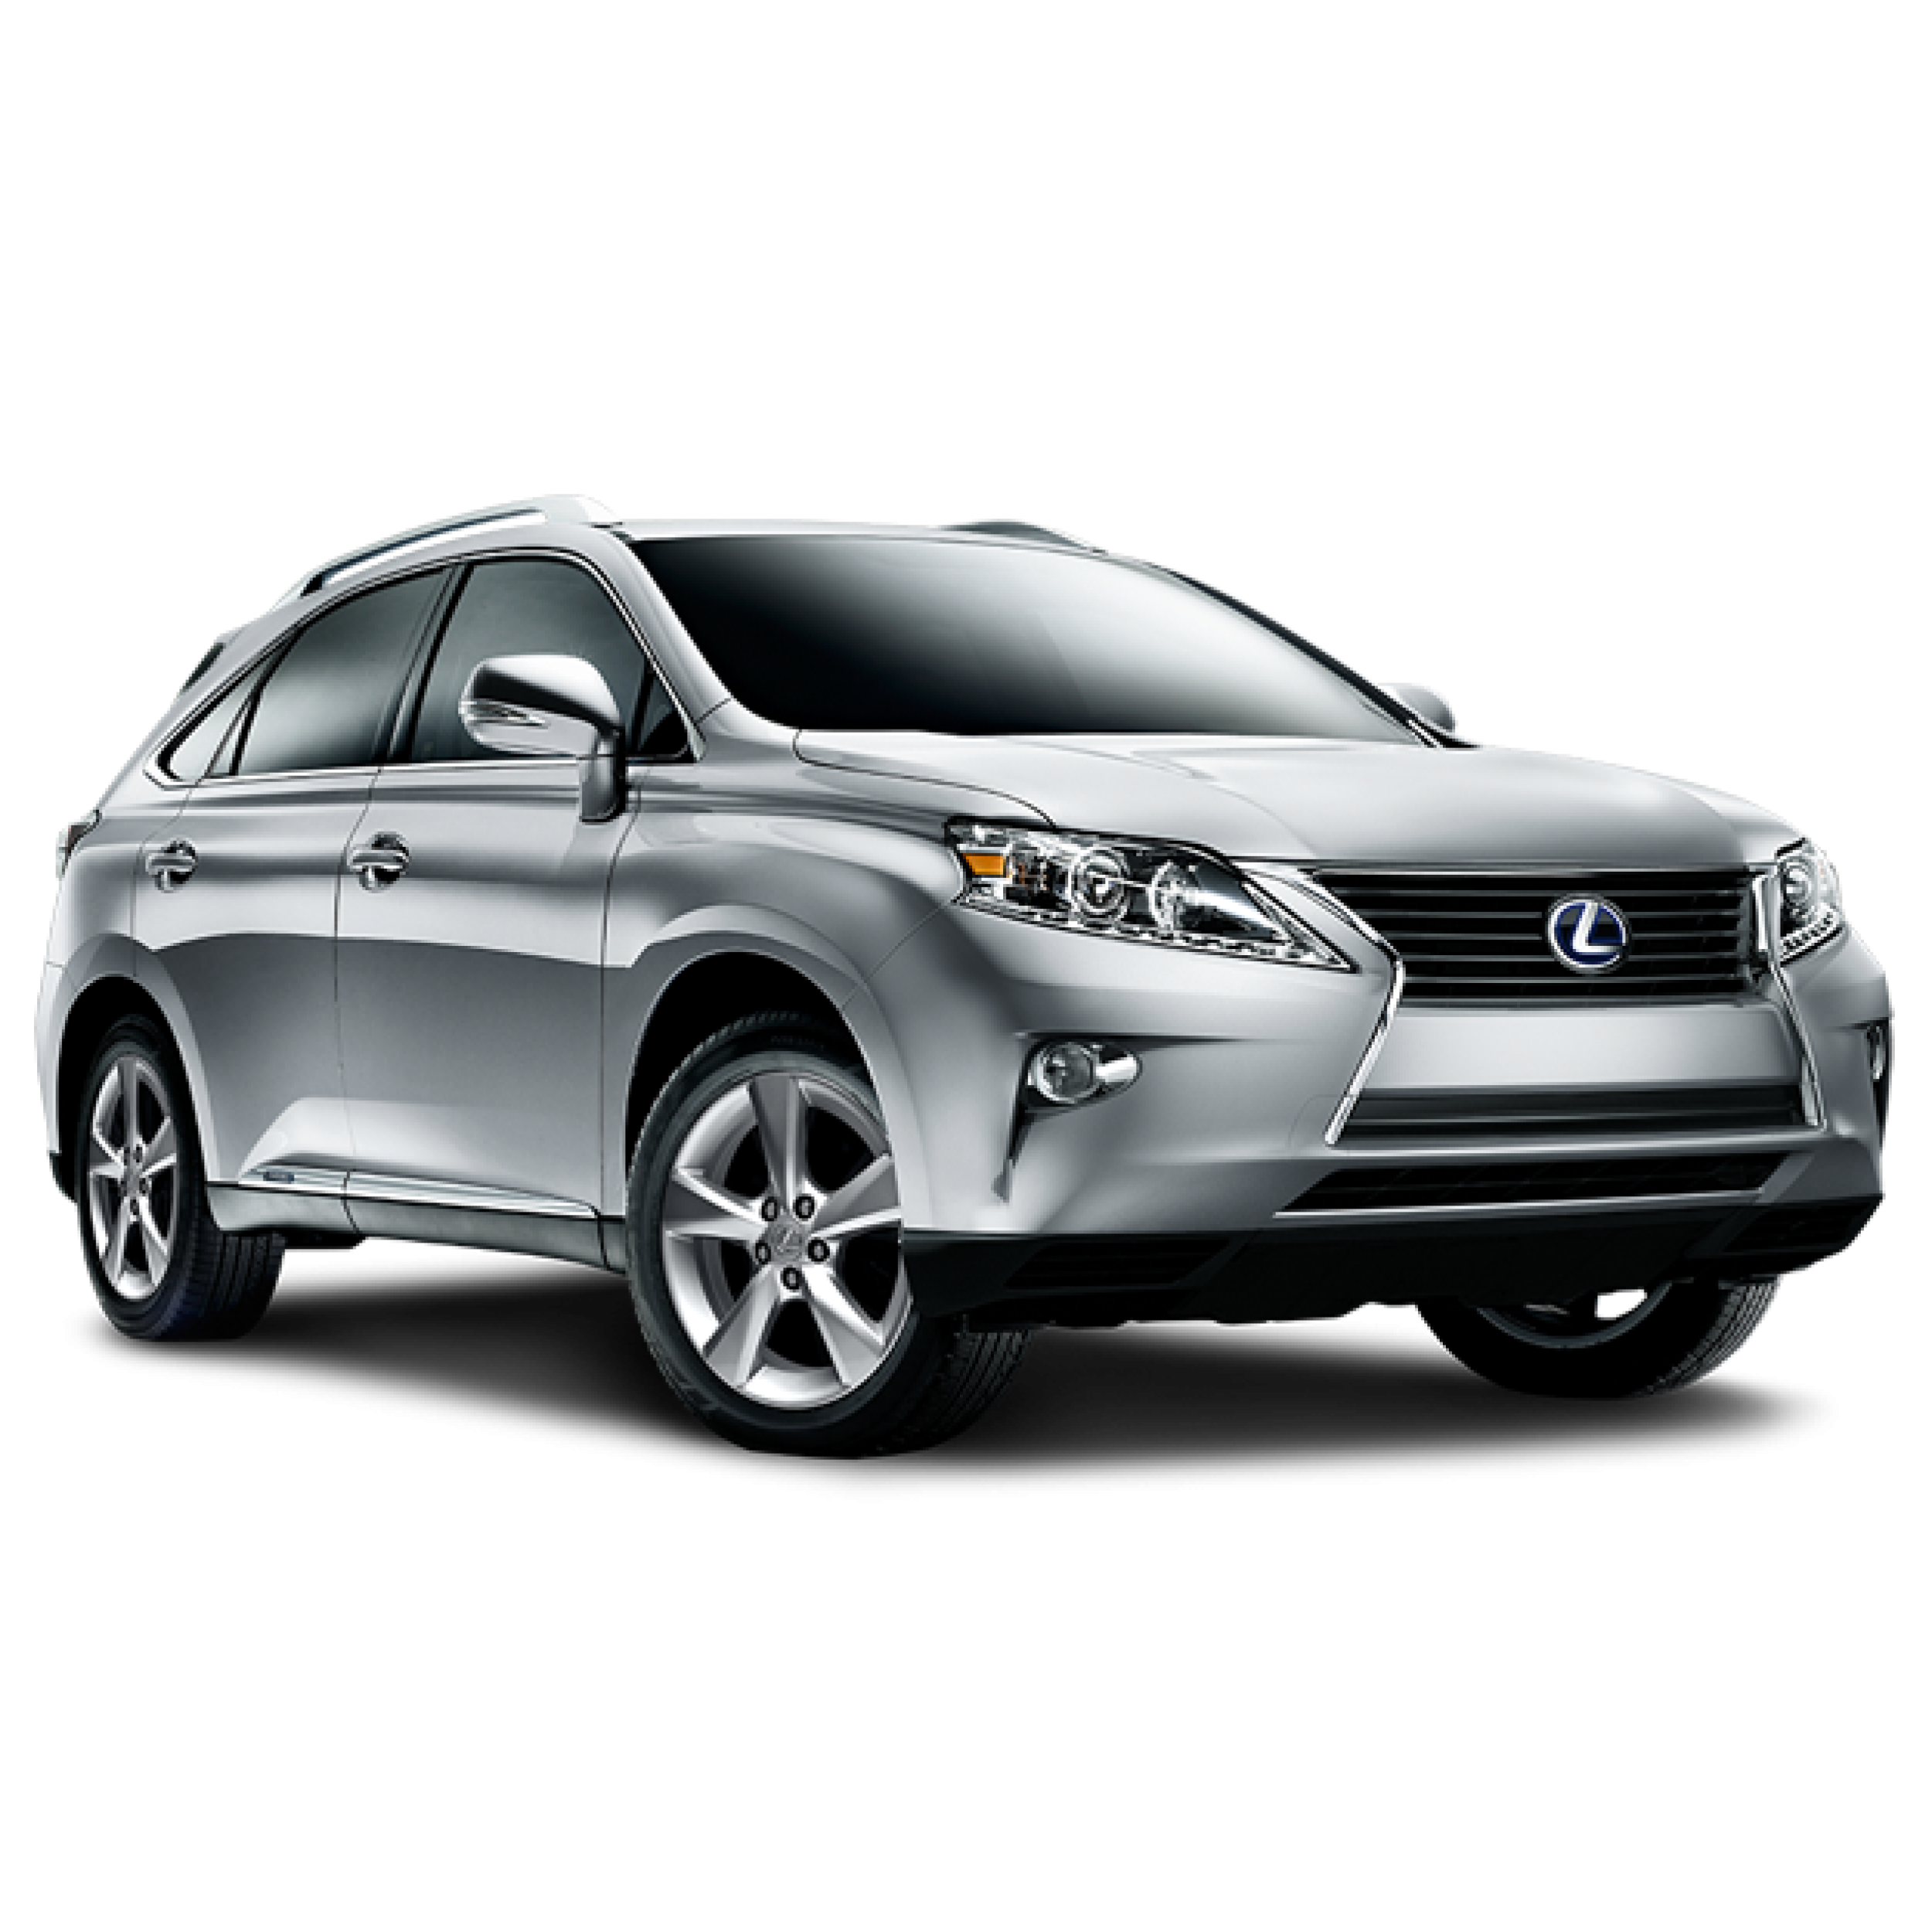 with download suv background png models transparent image lexus